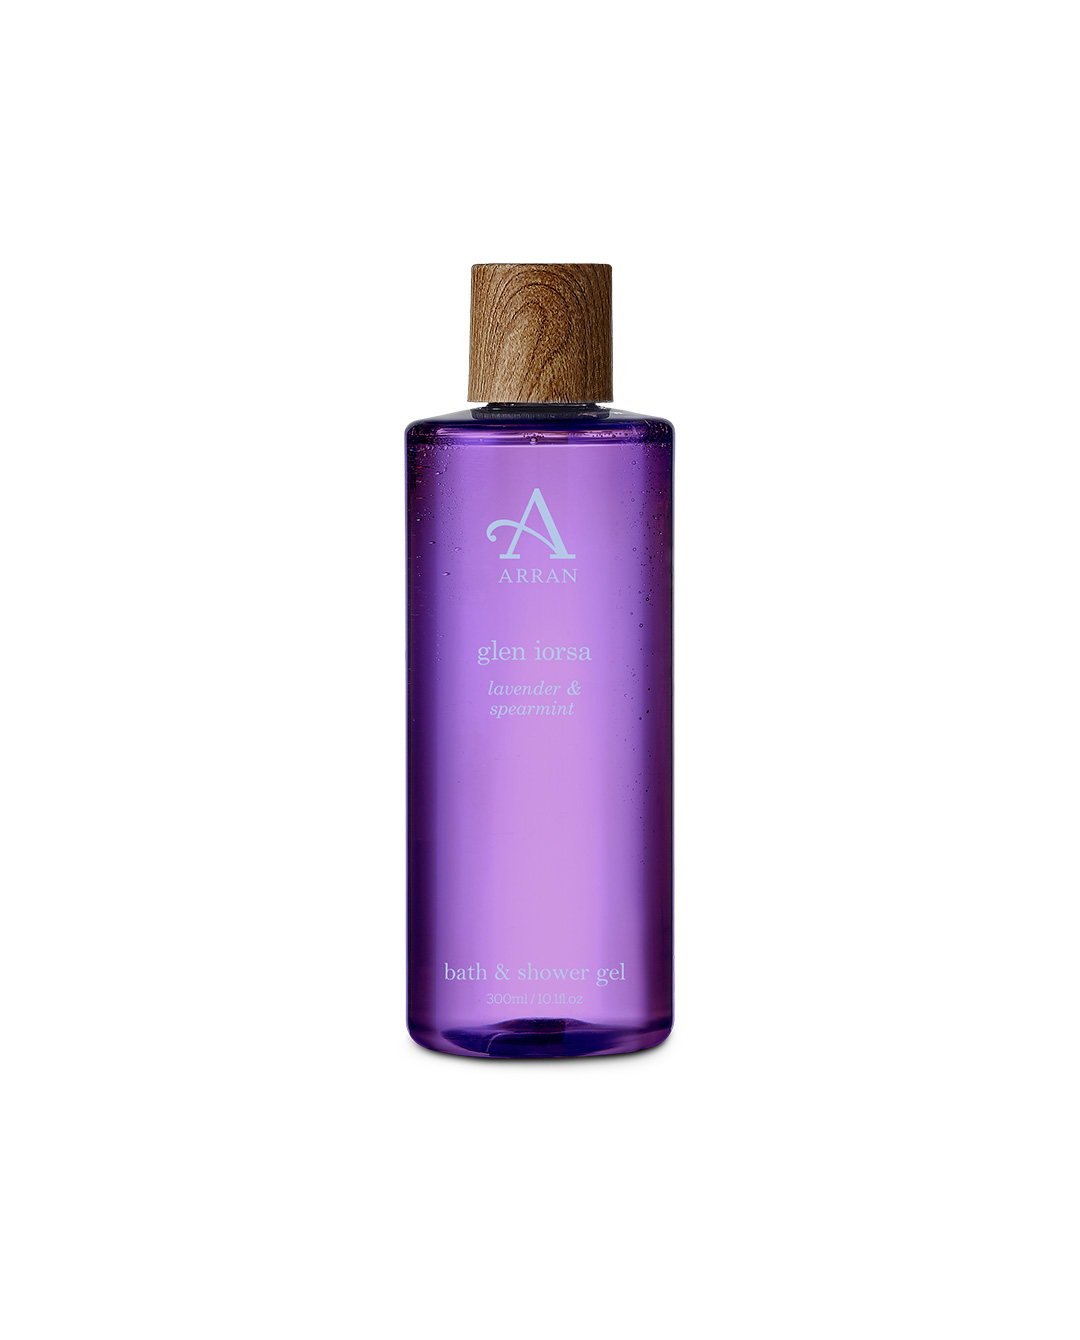 Arran Glen Iorsa Bath & Shower Gel 300ml